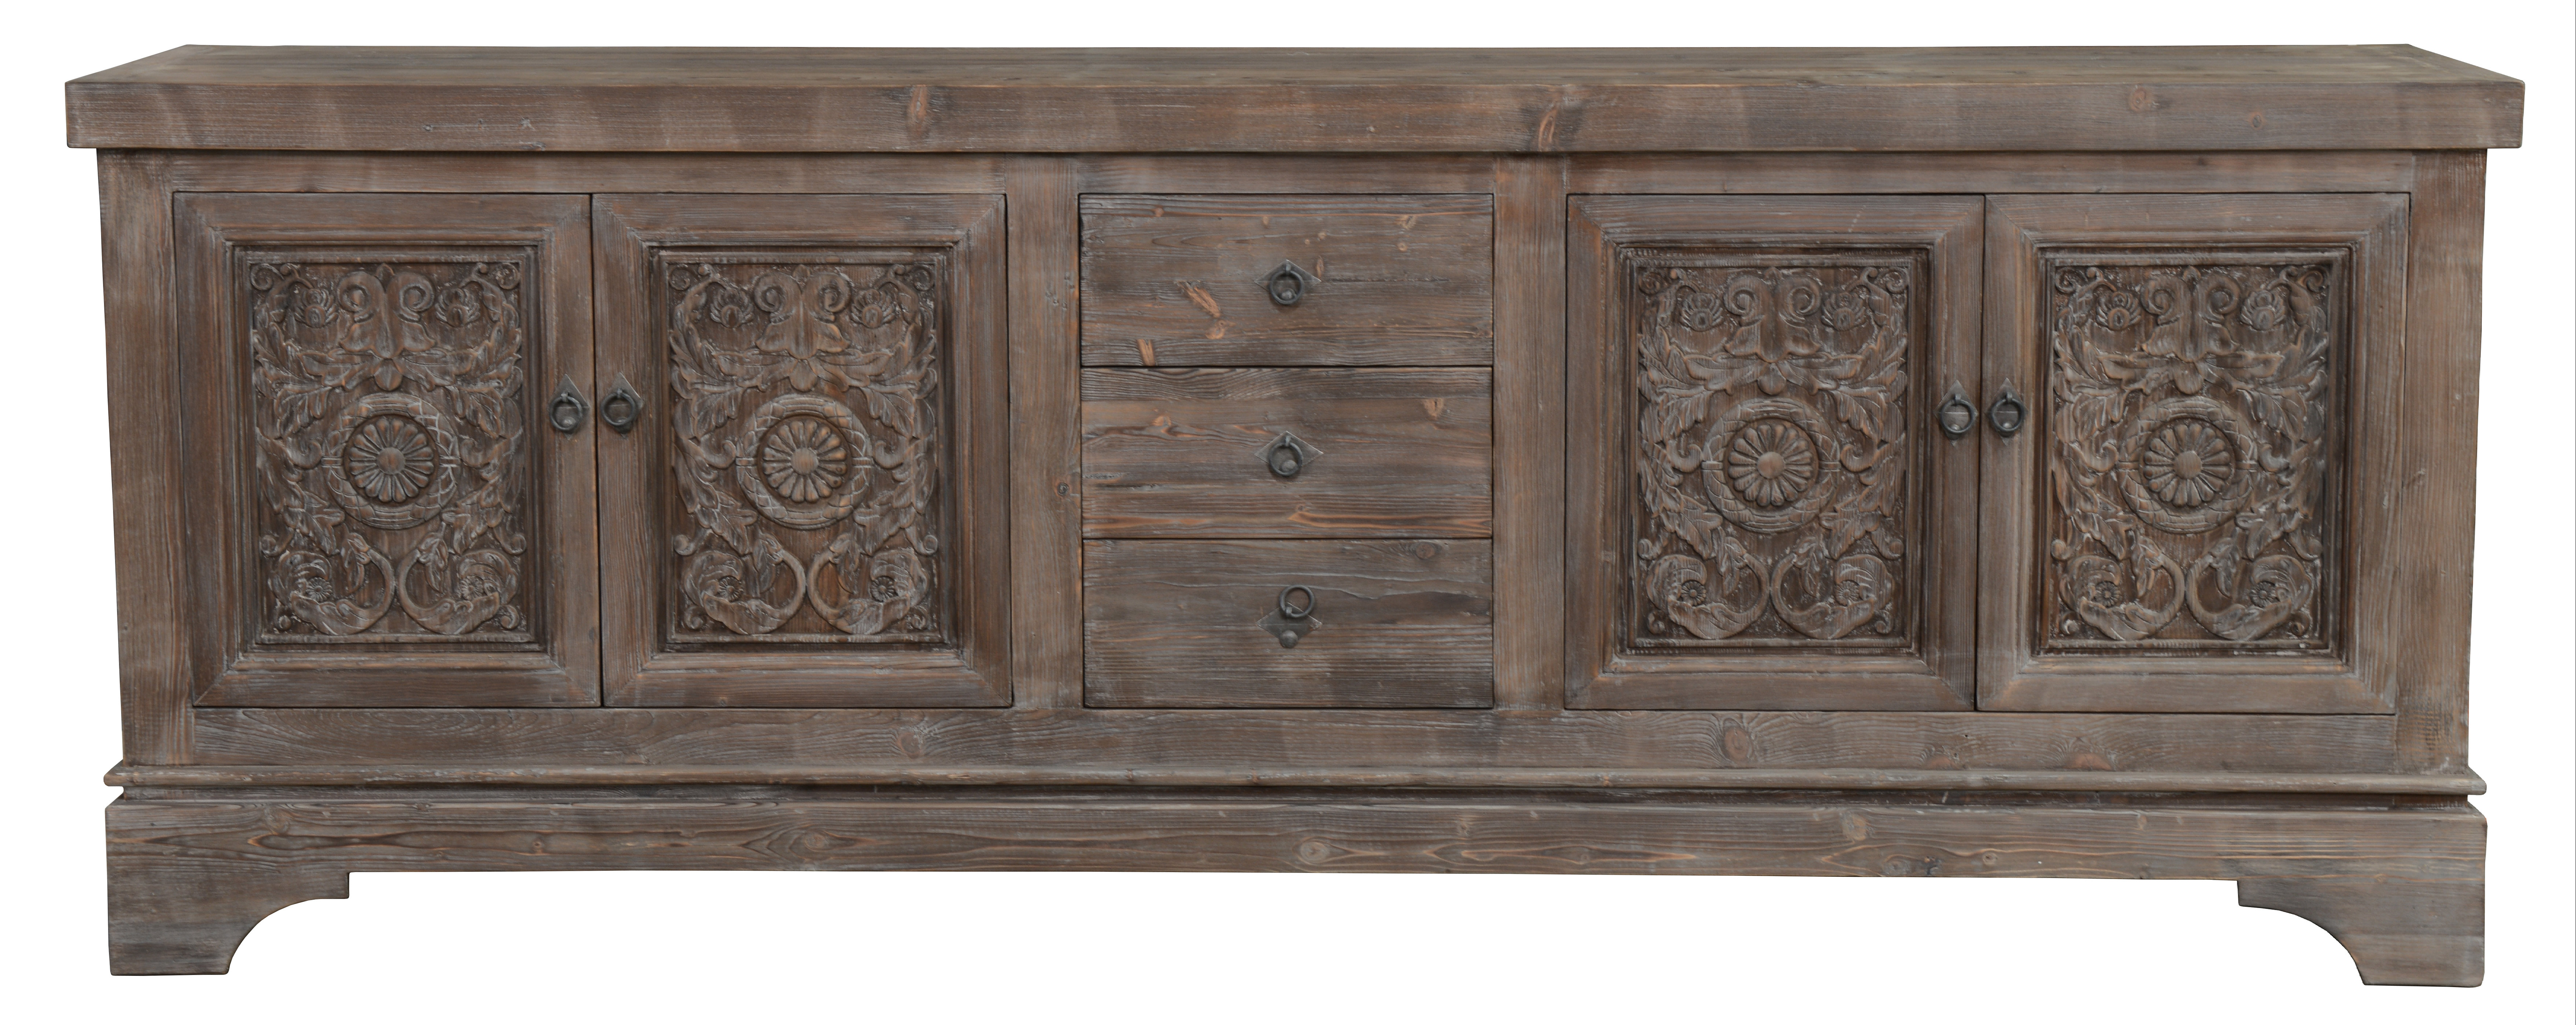 Farmhouse & Rustic Sideboards & Buffets | Birch Lane Within Seiling Sideboards (View 11 of 20)